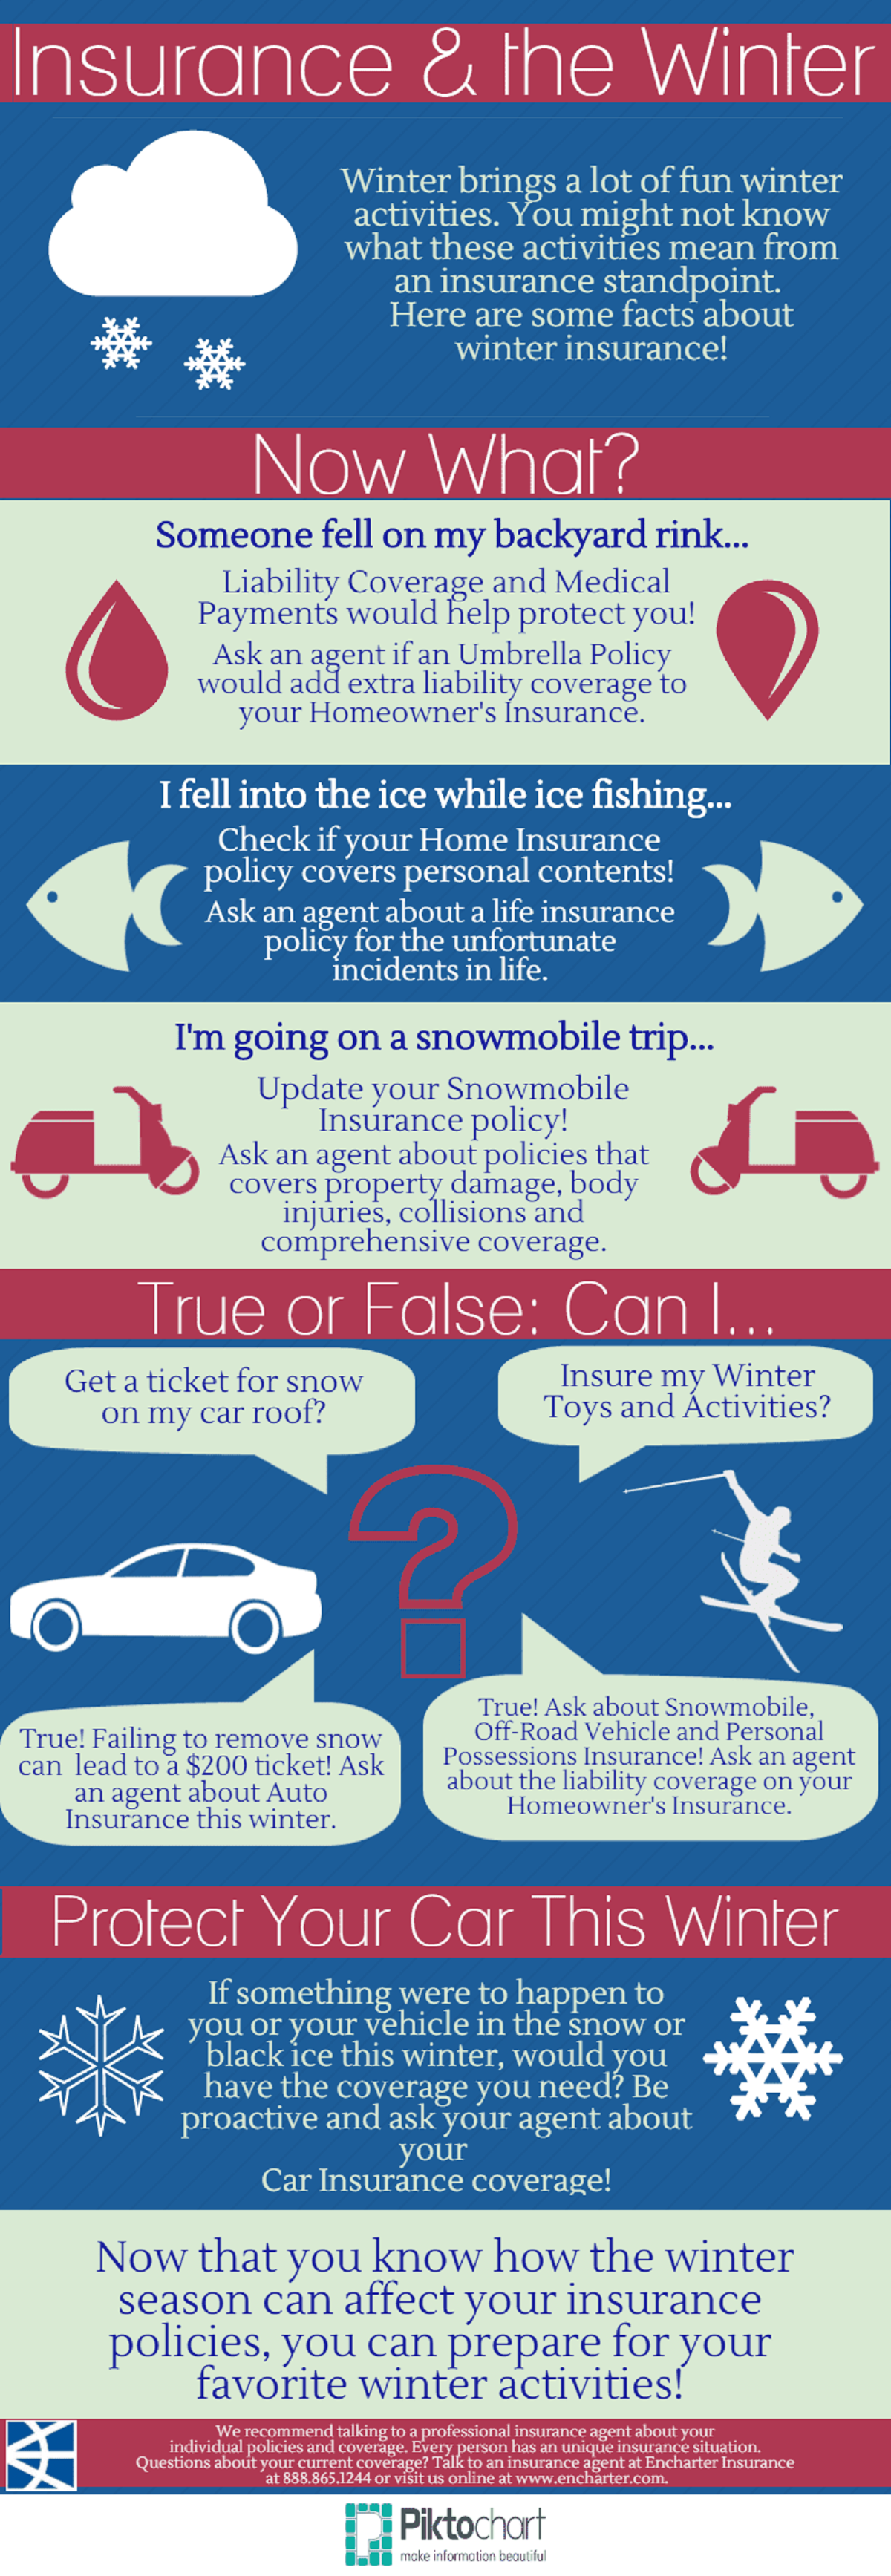 winter-insurance-infographic